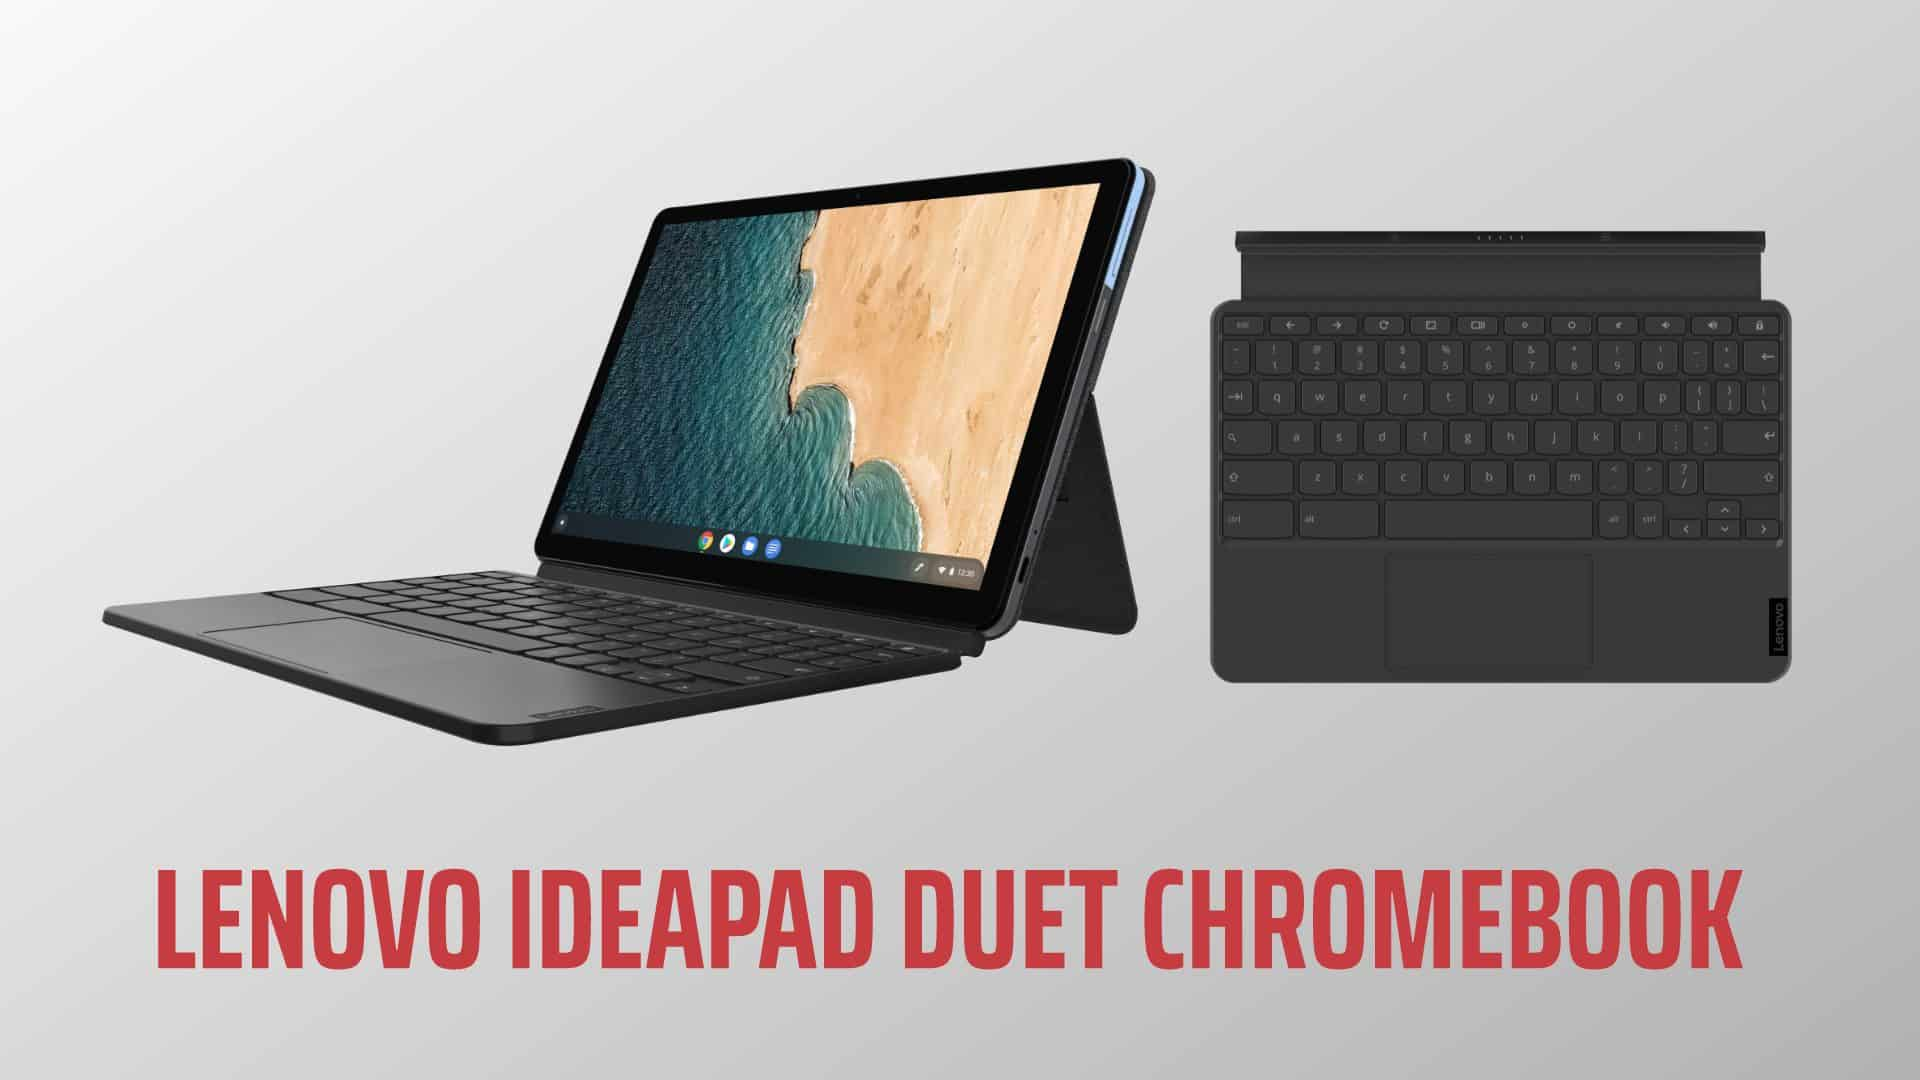 Lenovo S Ideapad Duet Review The Chromebook Adopts Ipad Hugtechs